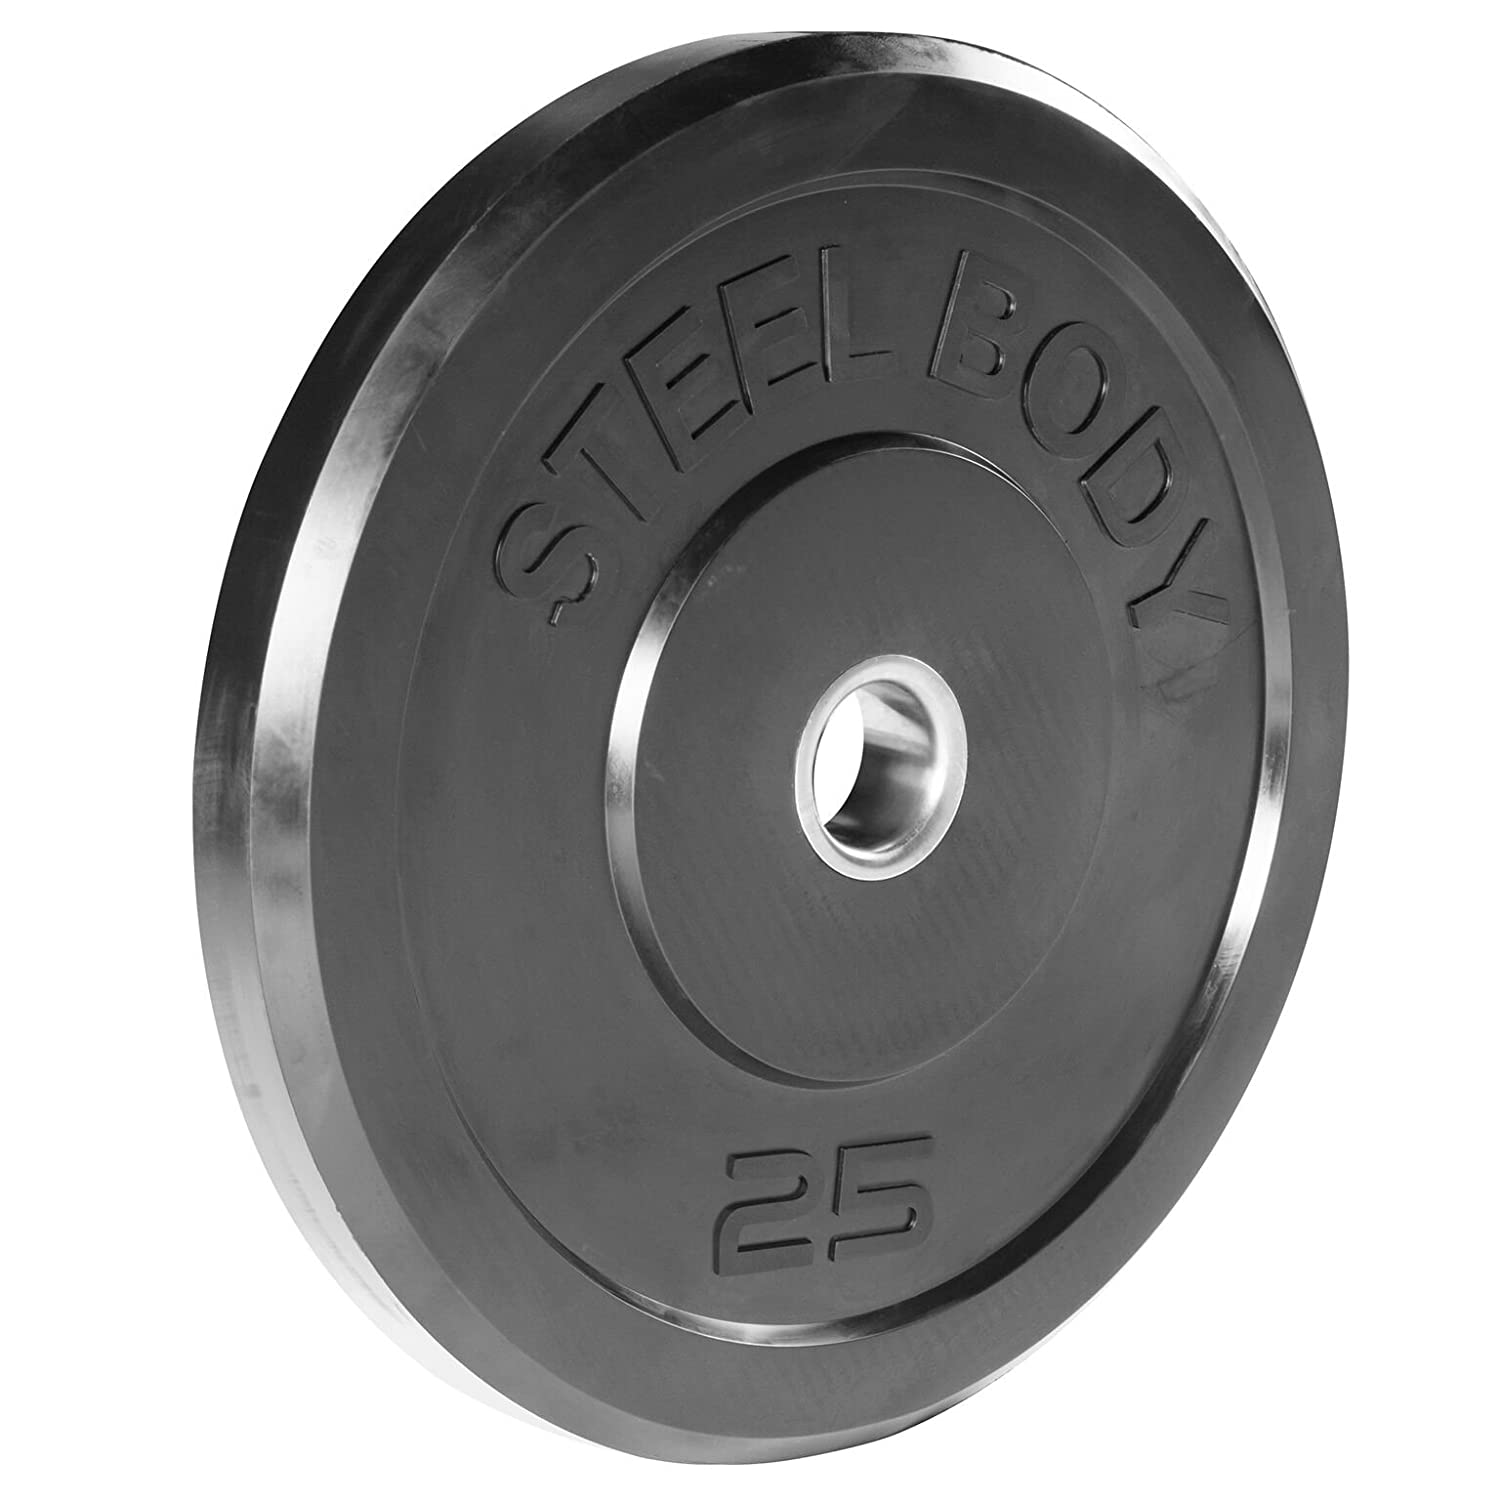 Workout Weights 10 lb // 35 lb // 25 lb Steelbody Olympic Rubber Bumper Weight Plate // 45 lb